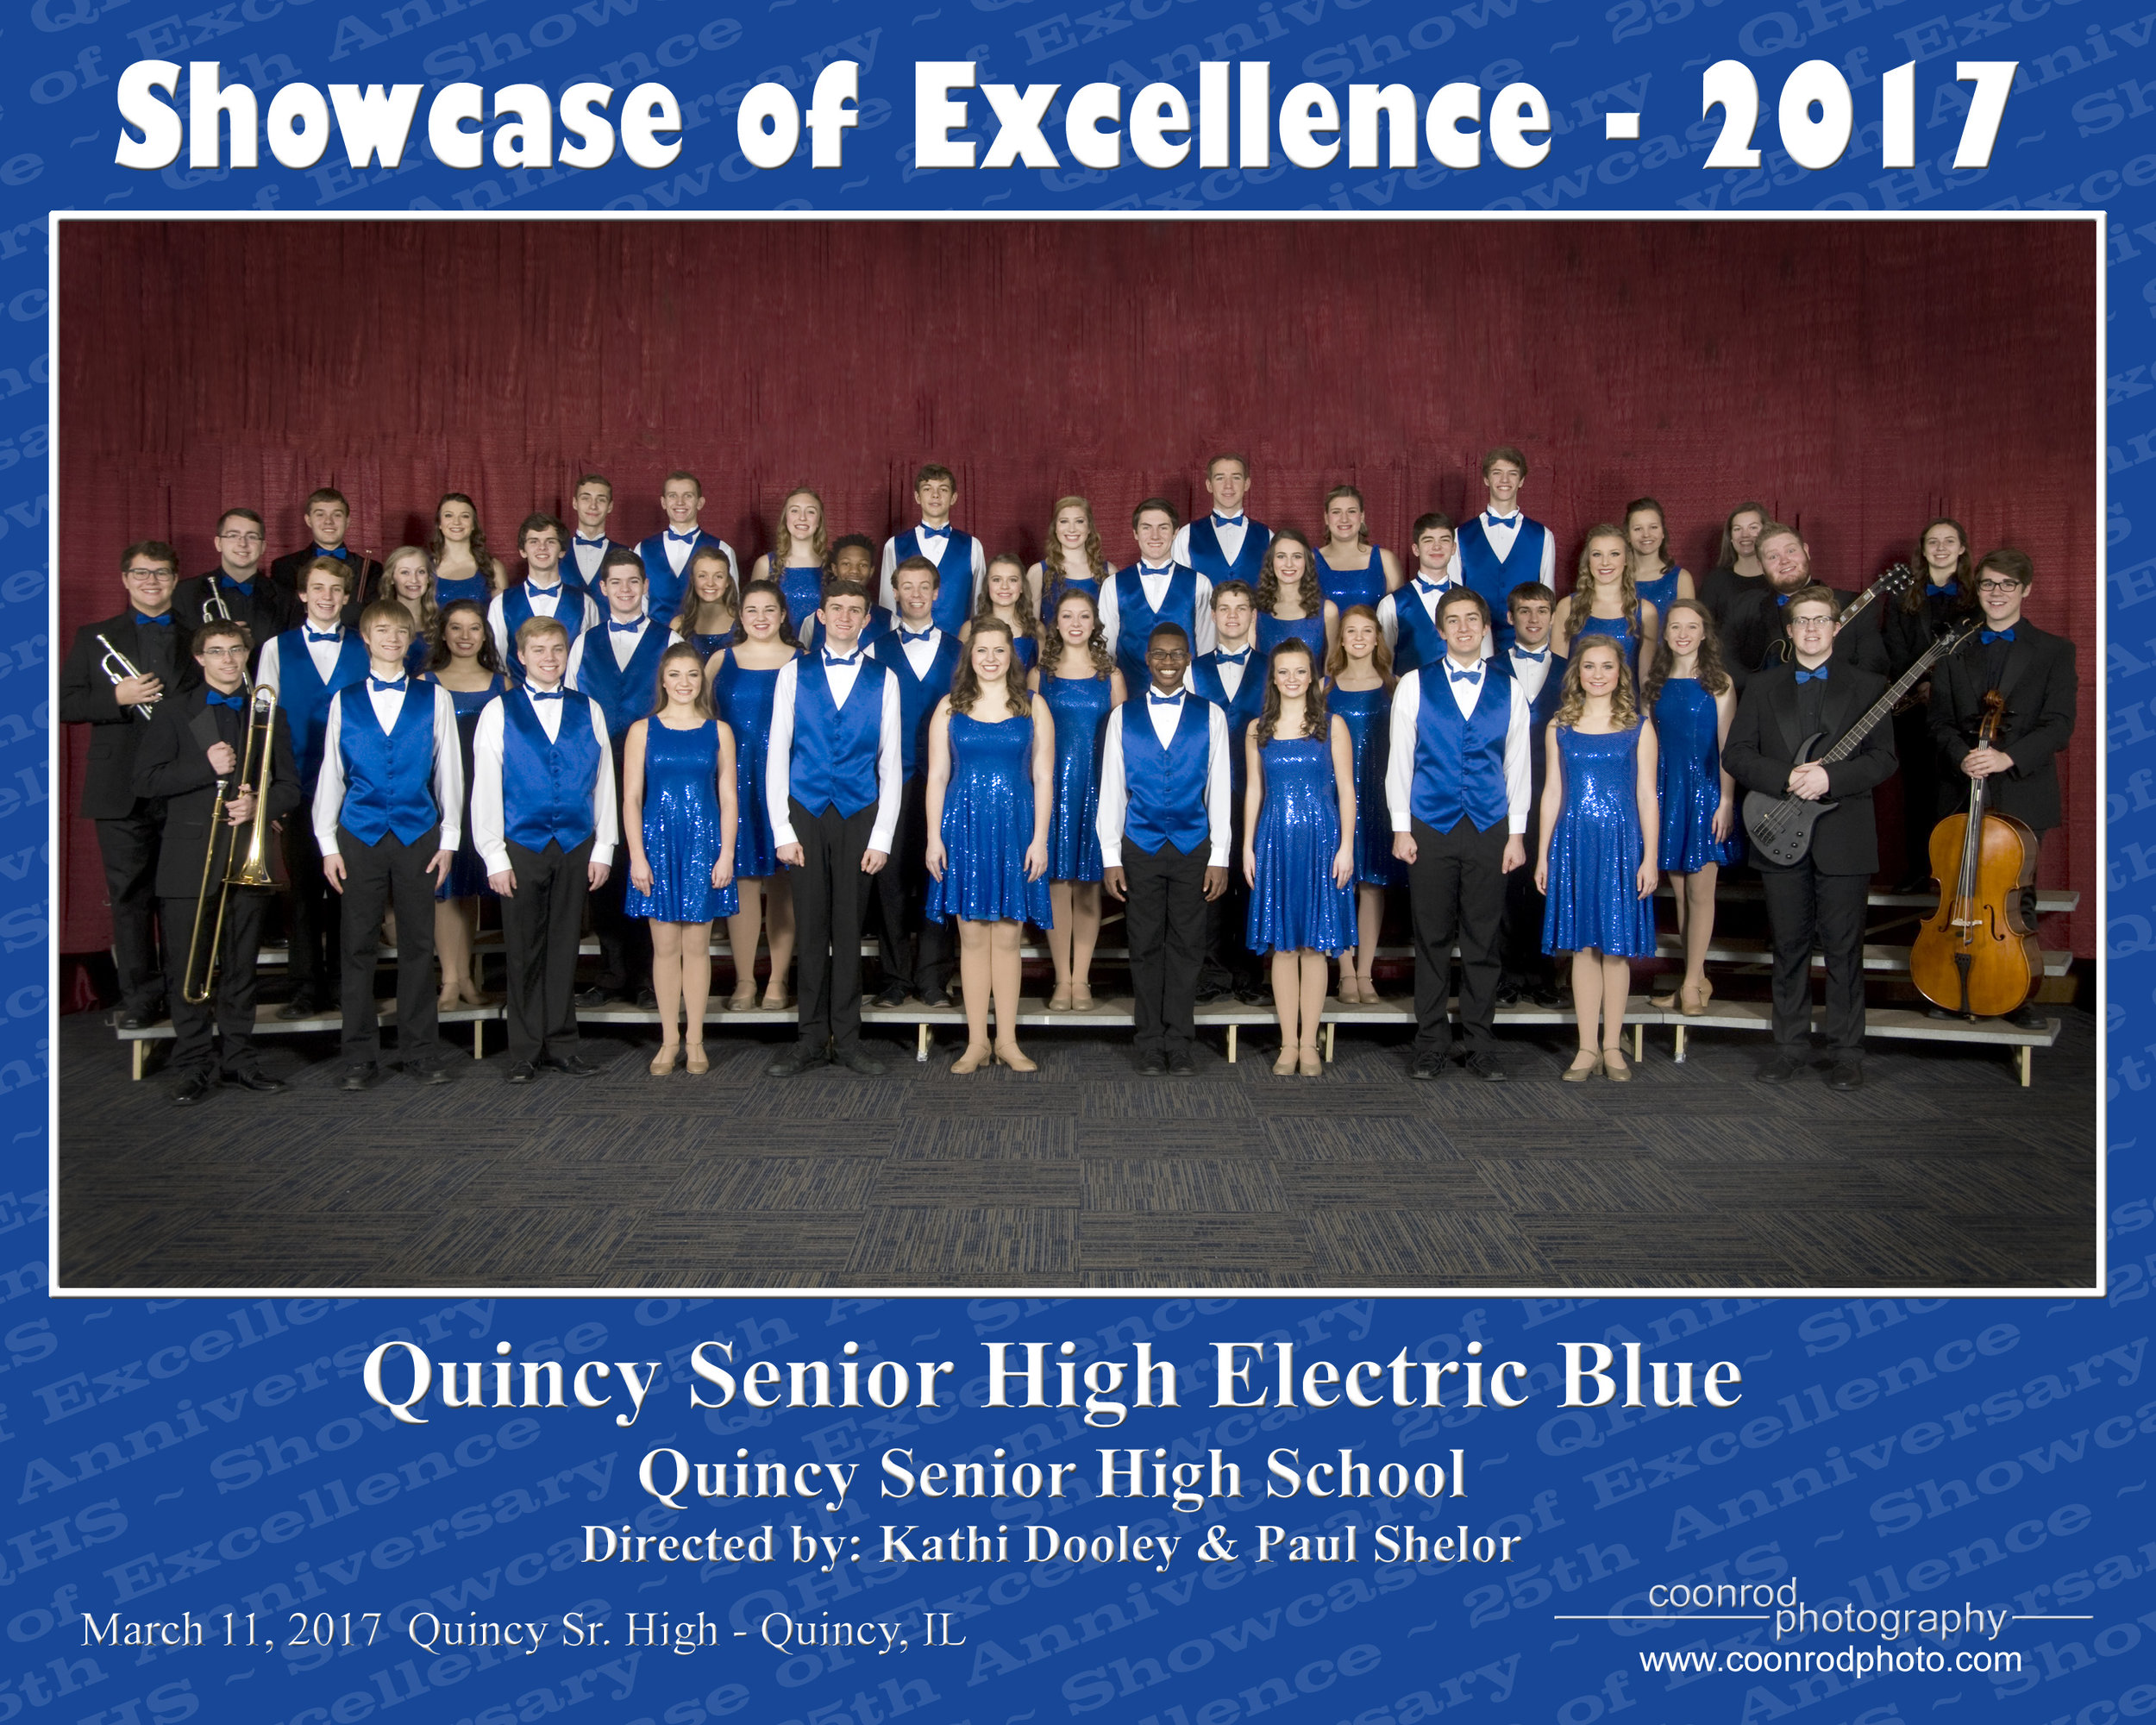 QHS Electric Blue 2017 copy.jpg